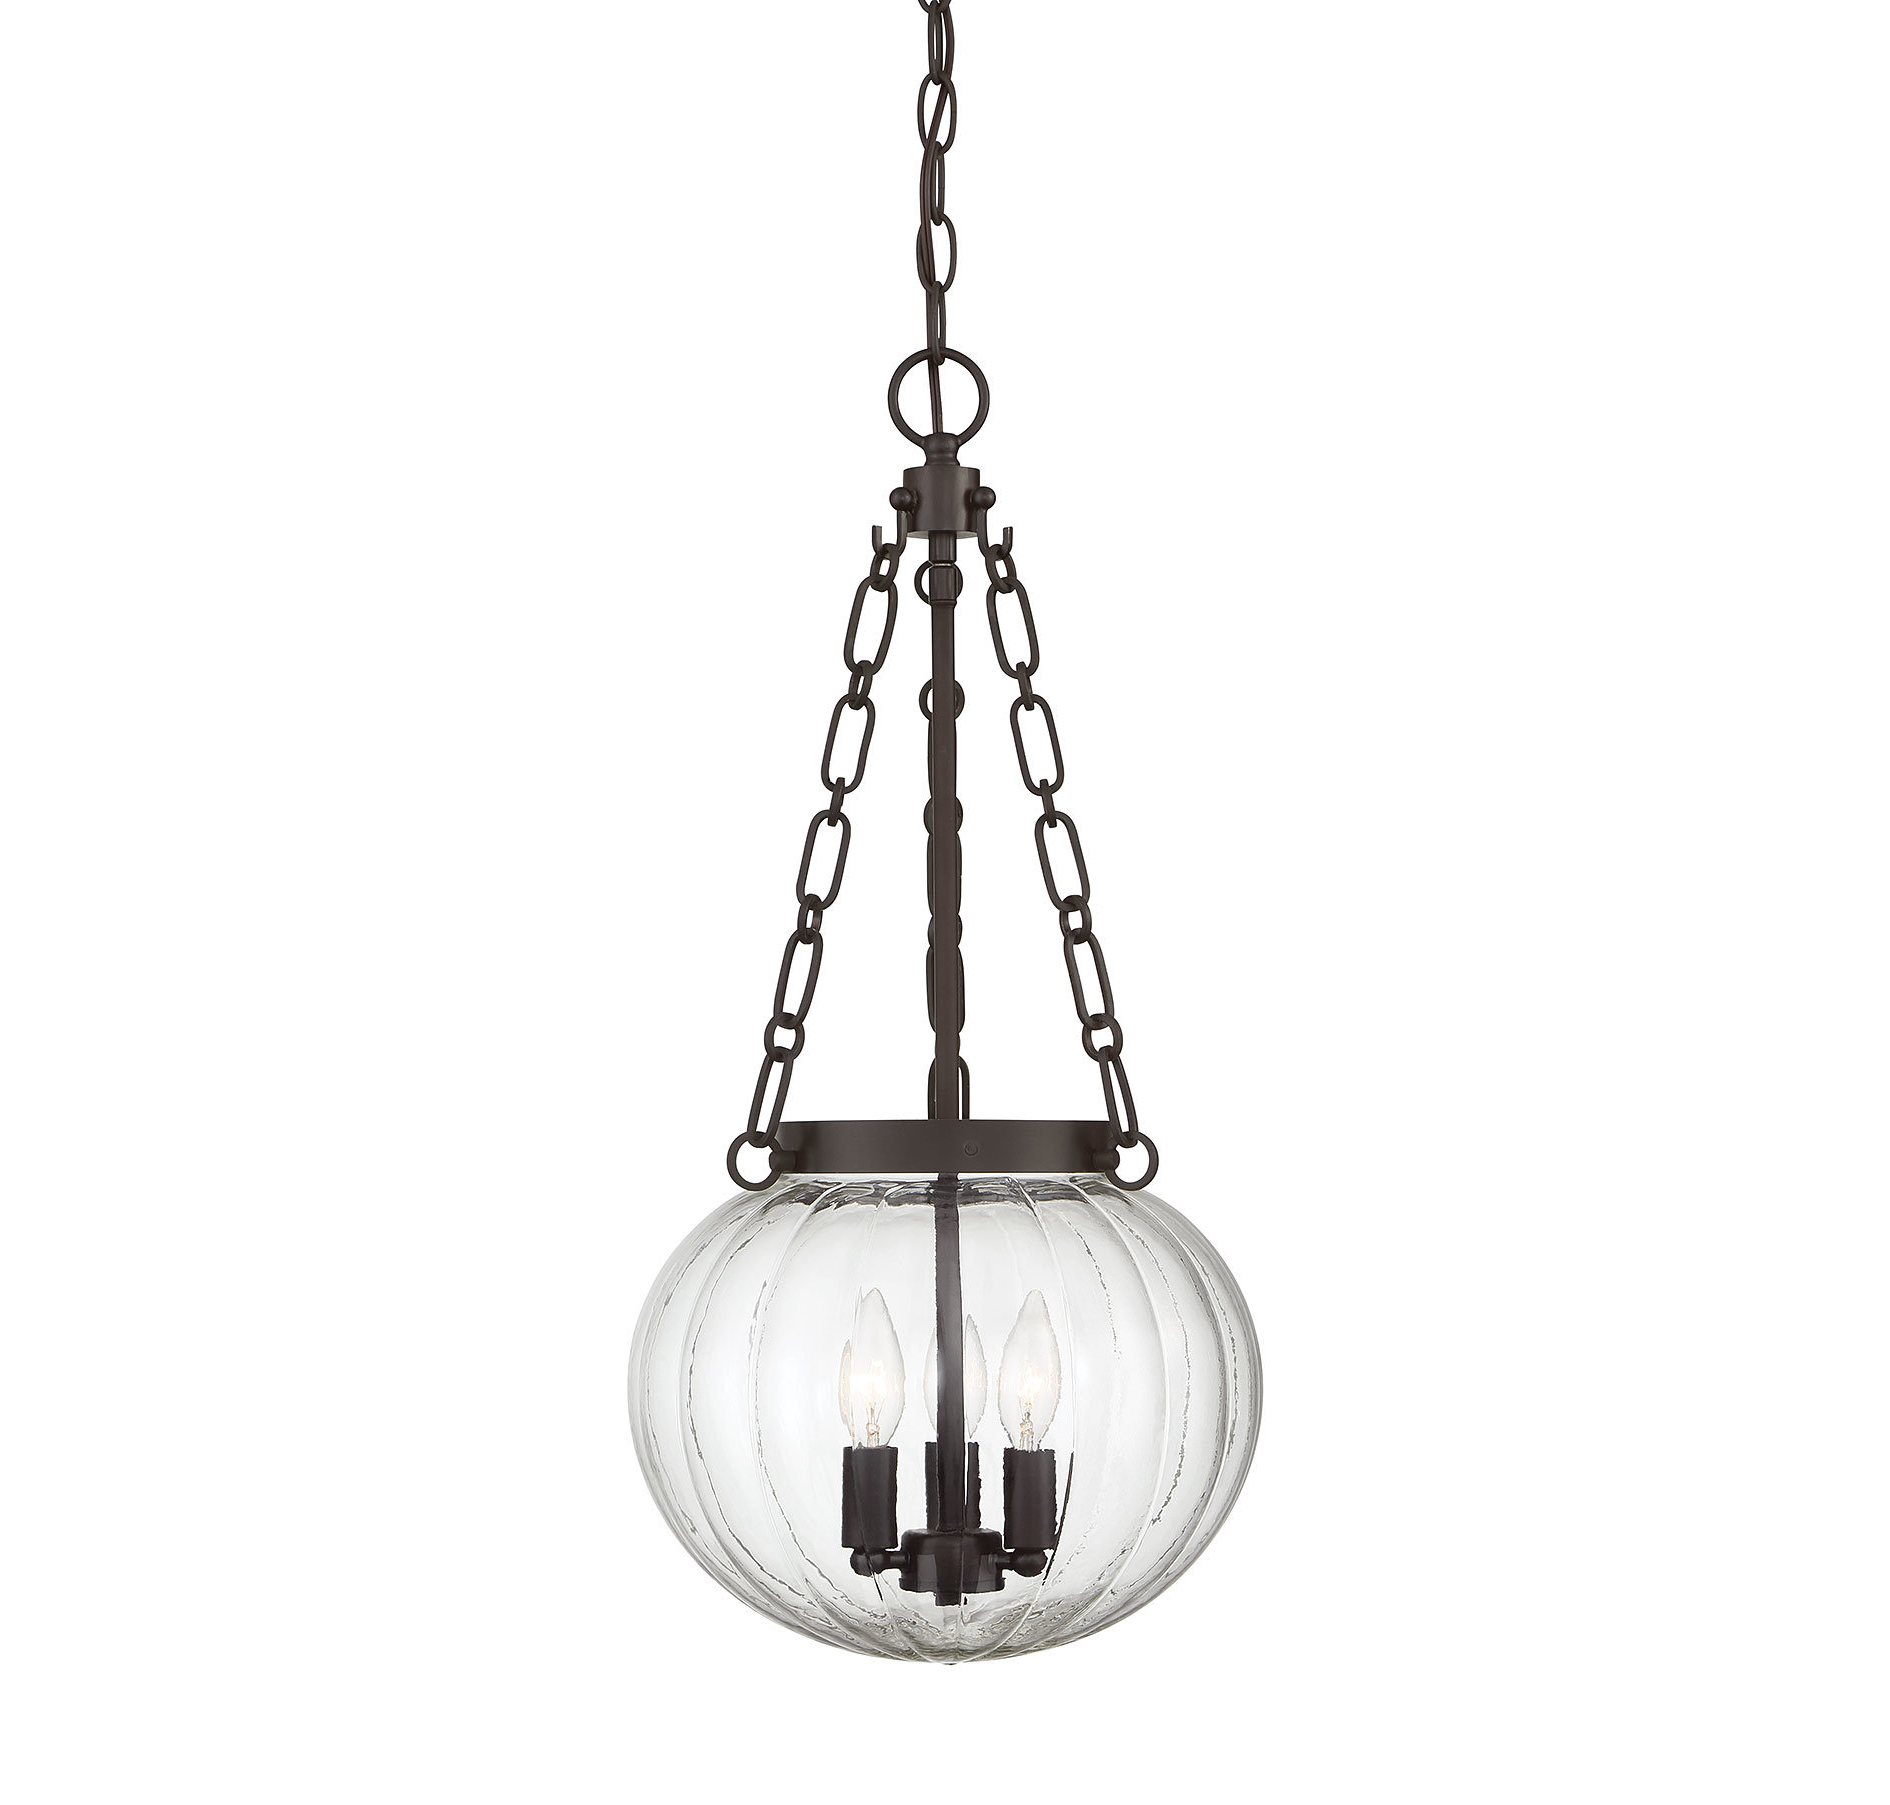 Emrick 3 Light Single Globe Pendant Within Most Up To Date Poynter 1 Light Single Cylinder Pendants (Gallery 20 of 20)